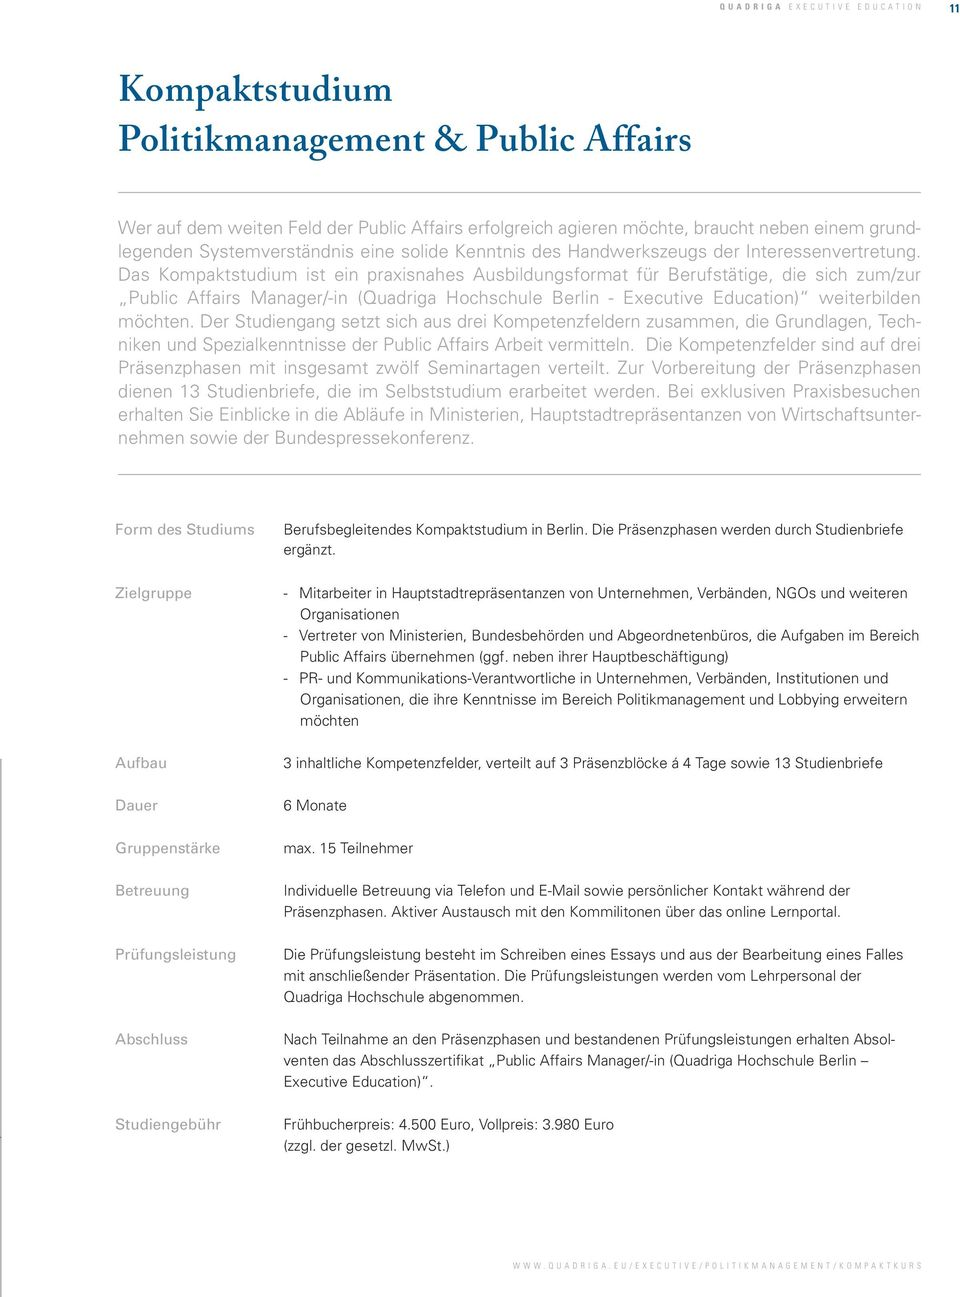 Das Kompaktstudium ist ein praxisnahes Ausbildungsformat für Berufstätige, die sich zum/zur Public Affairs Manager/-in (Quadriga Hochschule Berlin - Executive Education) weiterbilden möchten.